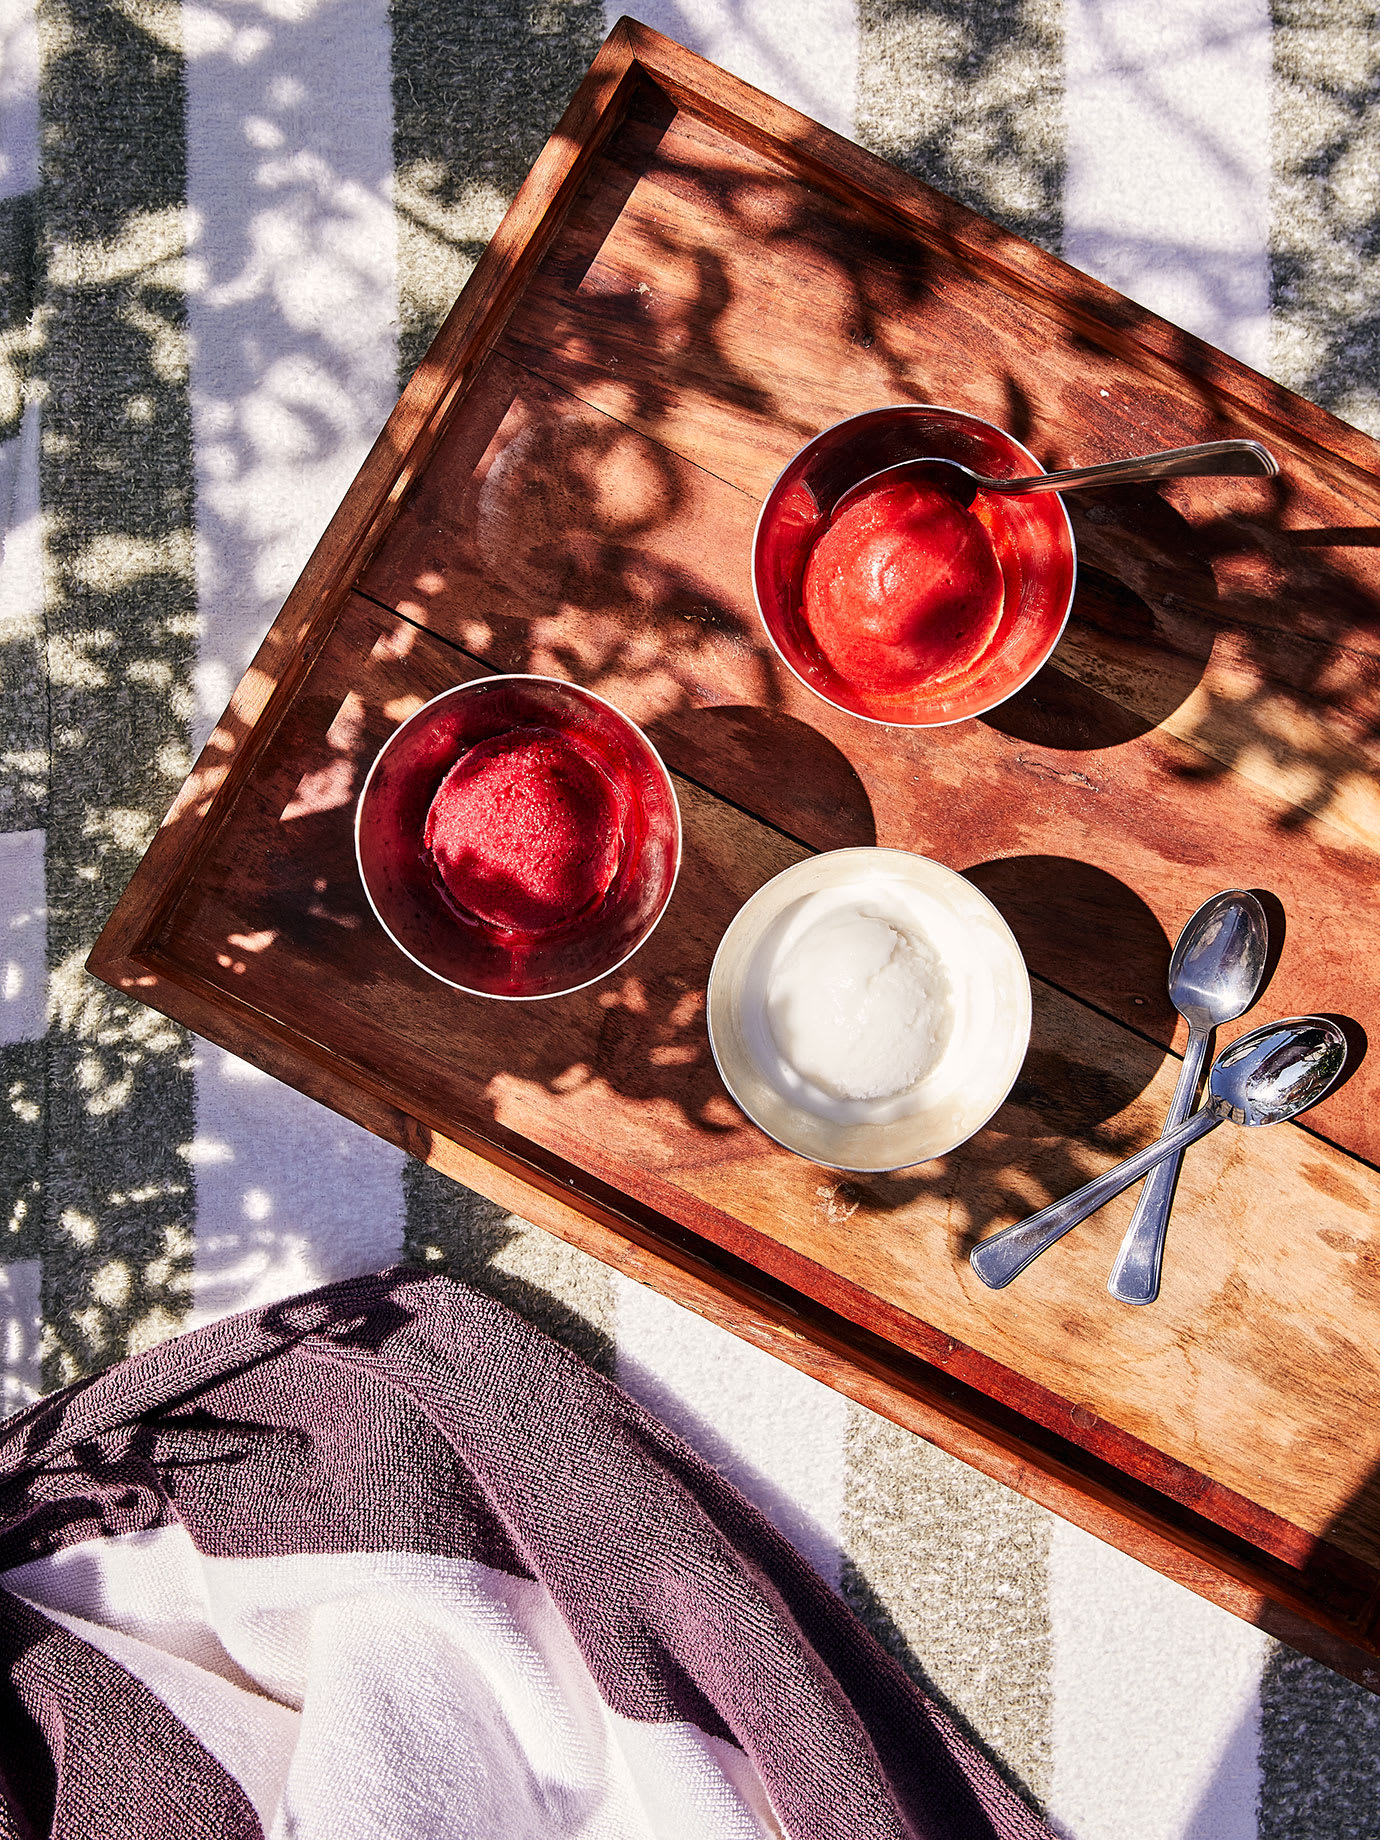 Three types of sorbet in metal bowls on a tray.